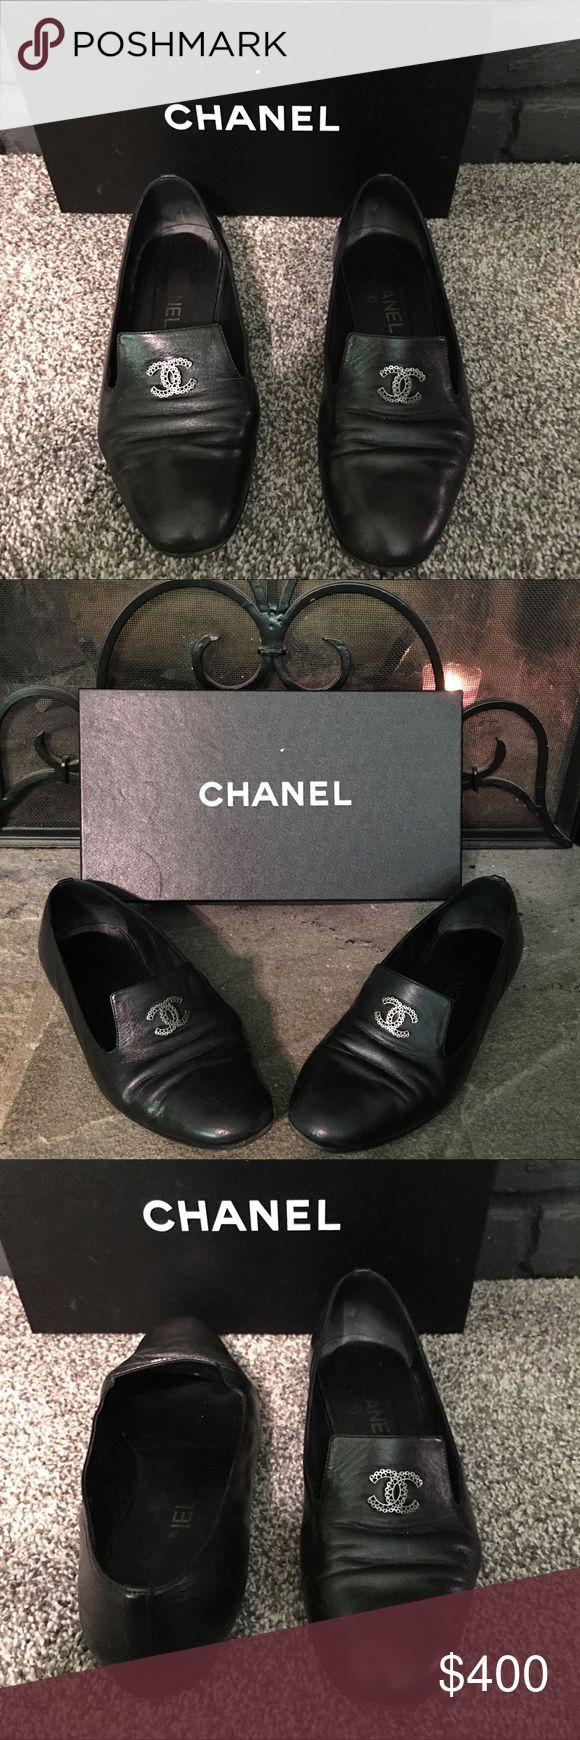 Authentic CHANEL  Black leather loafers Authentic Chanel black leather flats/loafers in great condition no scratches or fading on leather.Inside Chanel logo has some fading true to wear and bottom soles have been replaced . Comes with original box . CHANEL Shoes Flats & Loafers